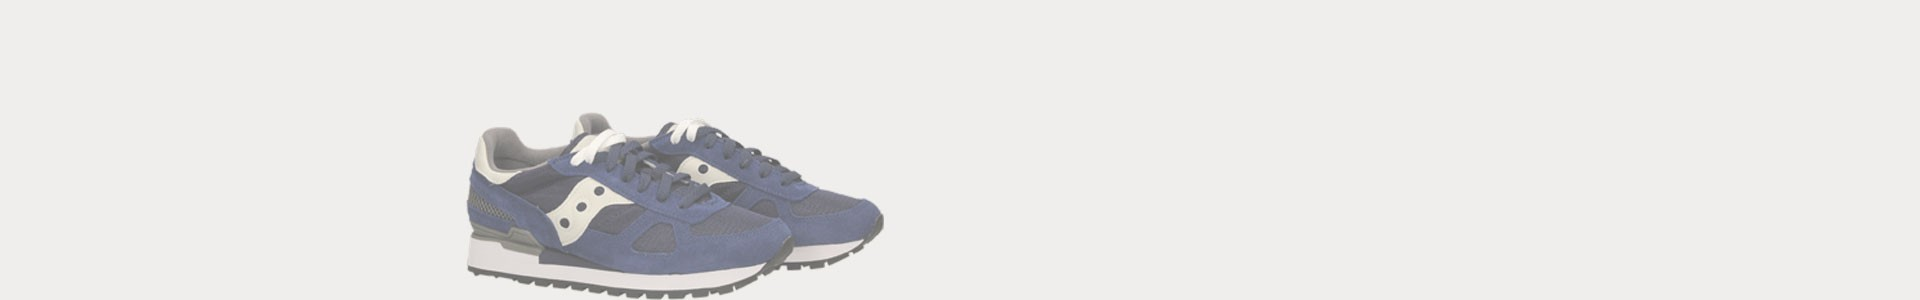 Sneakers for Men online | Buy Now on AnyGivenSunday.Shop